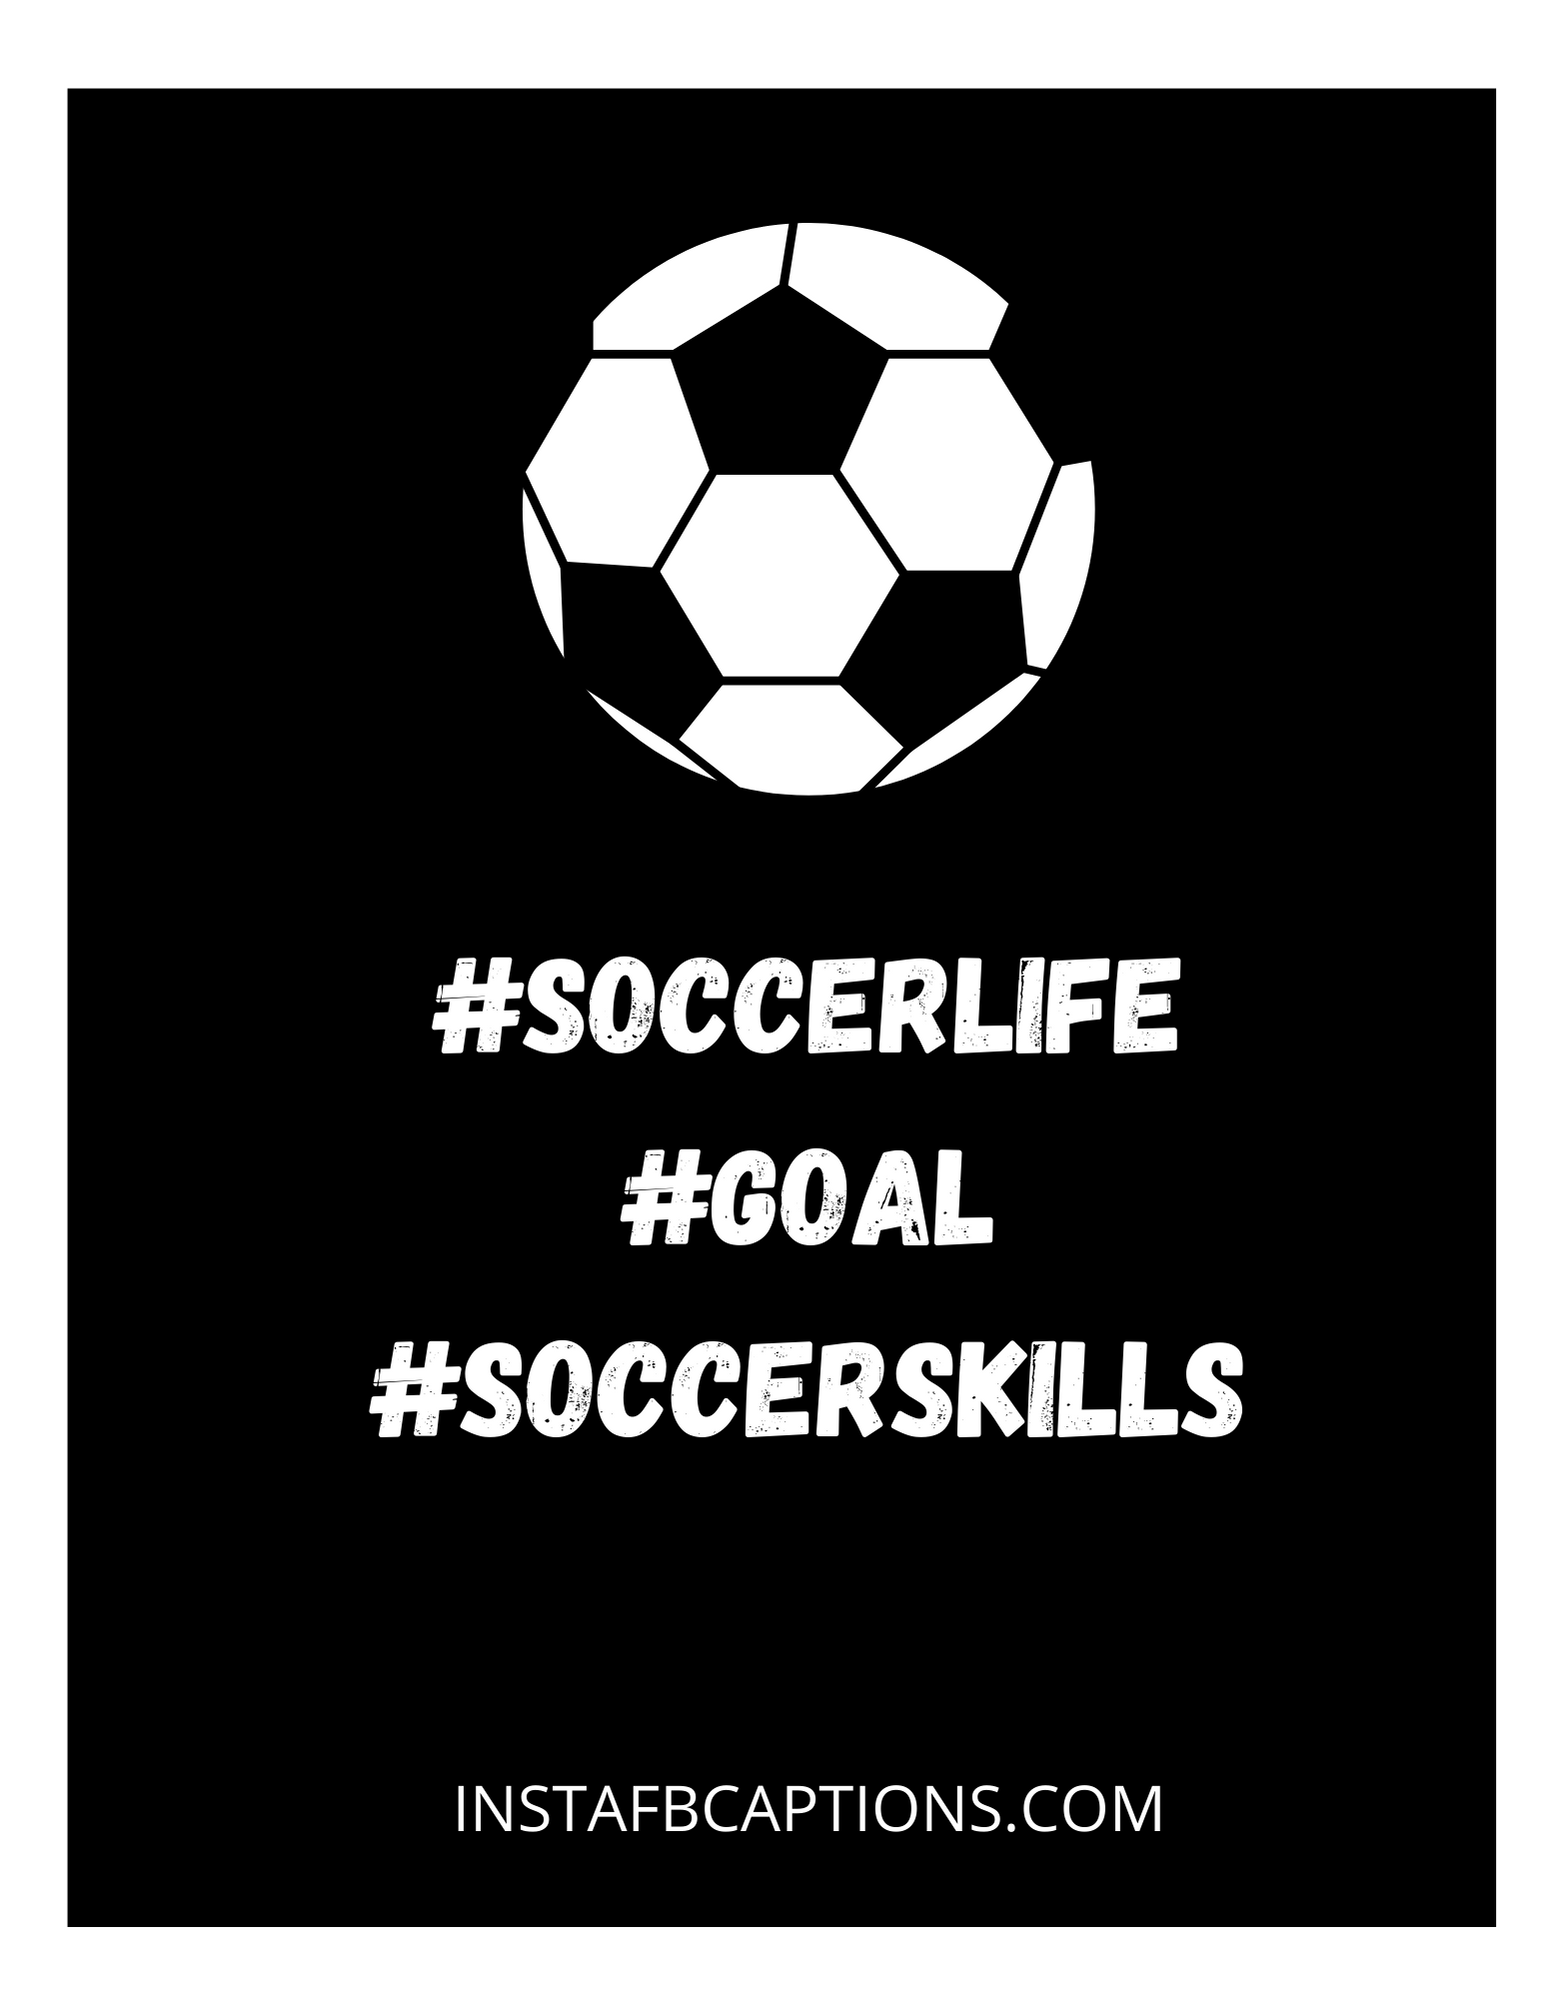 Apt Hashtags For All Your Soccer Related Posts  - Apt Hashtags for All Your Soccer Related Posts - SOCCER Instagram Captions & Quotes for Guys, Girls in 2021